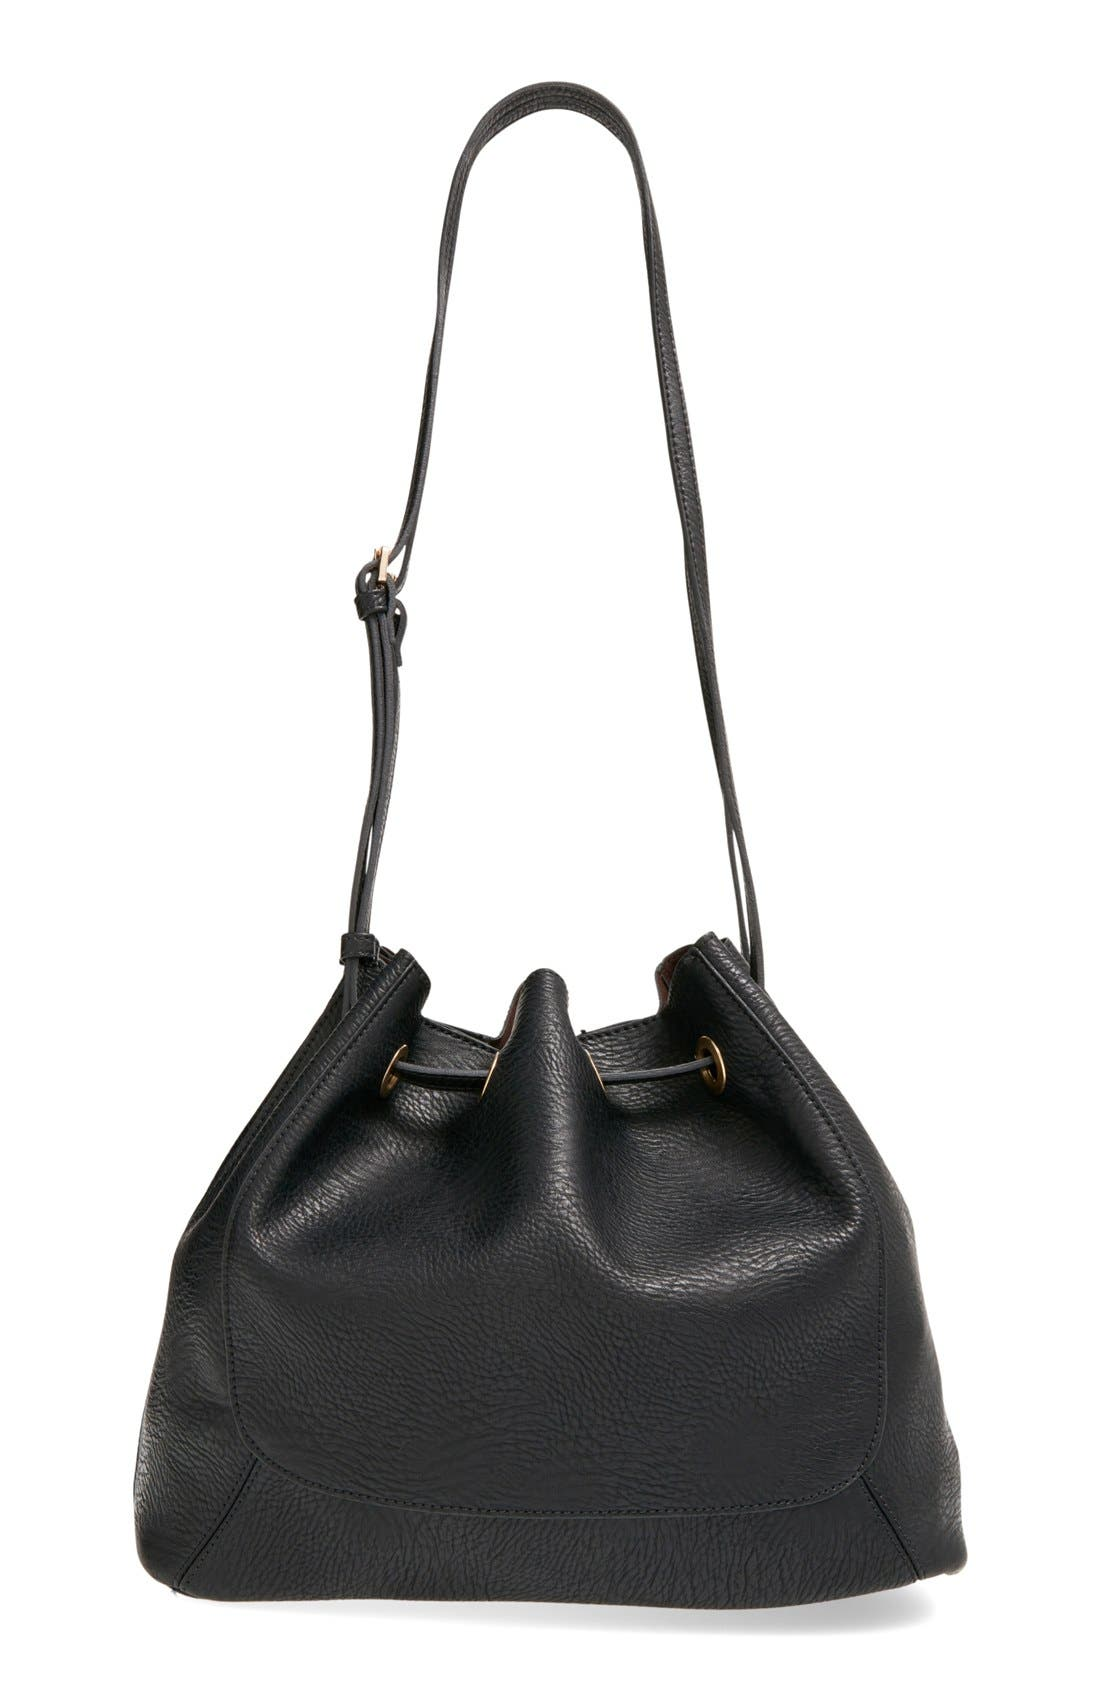 Alternate Image 1 Selected - Street Level Faux Leather Shoulder Bag